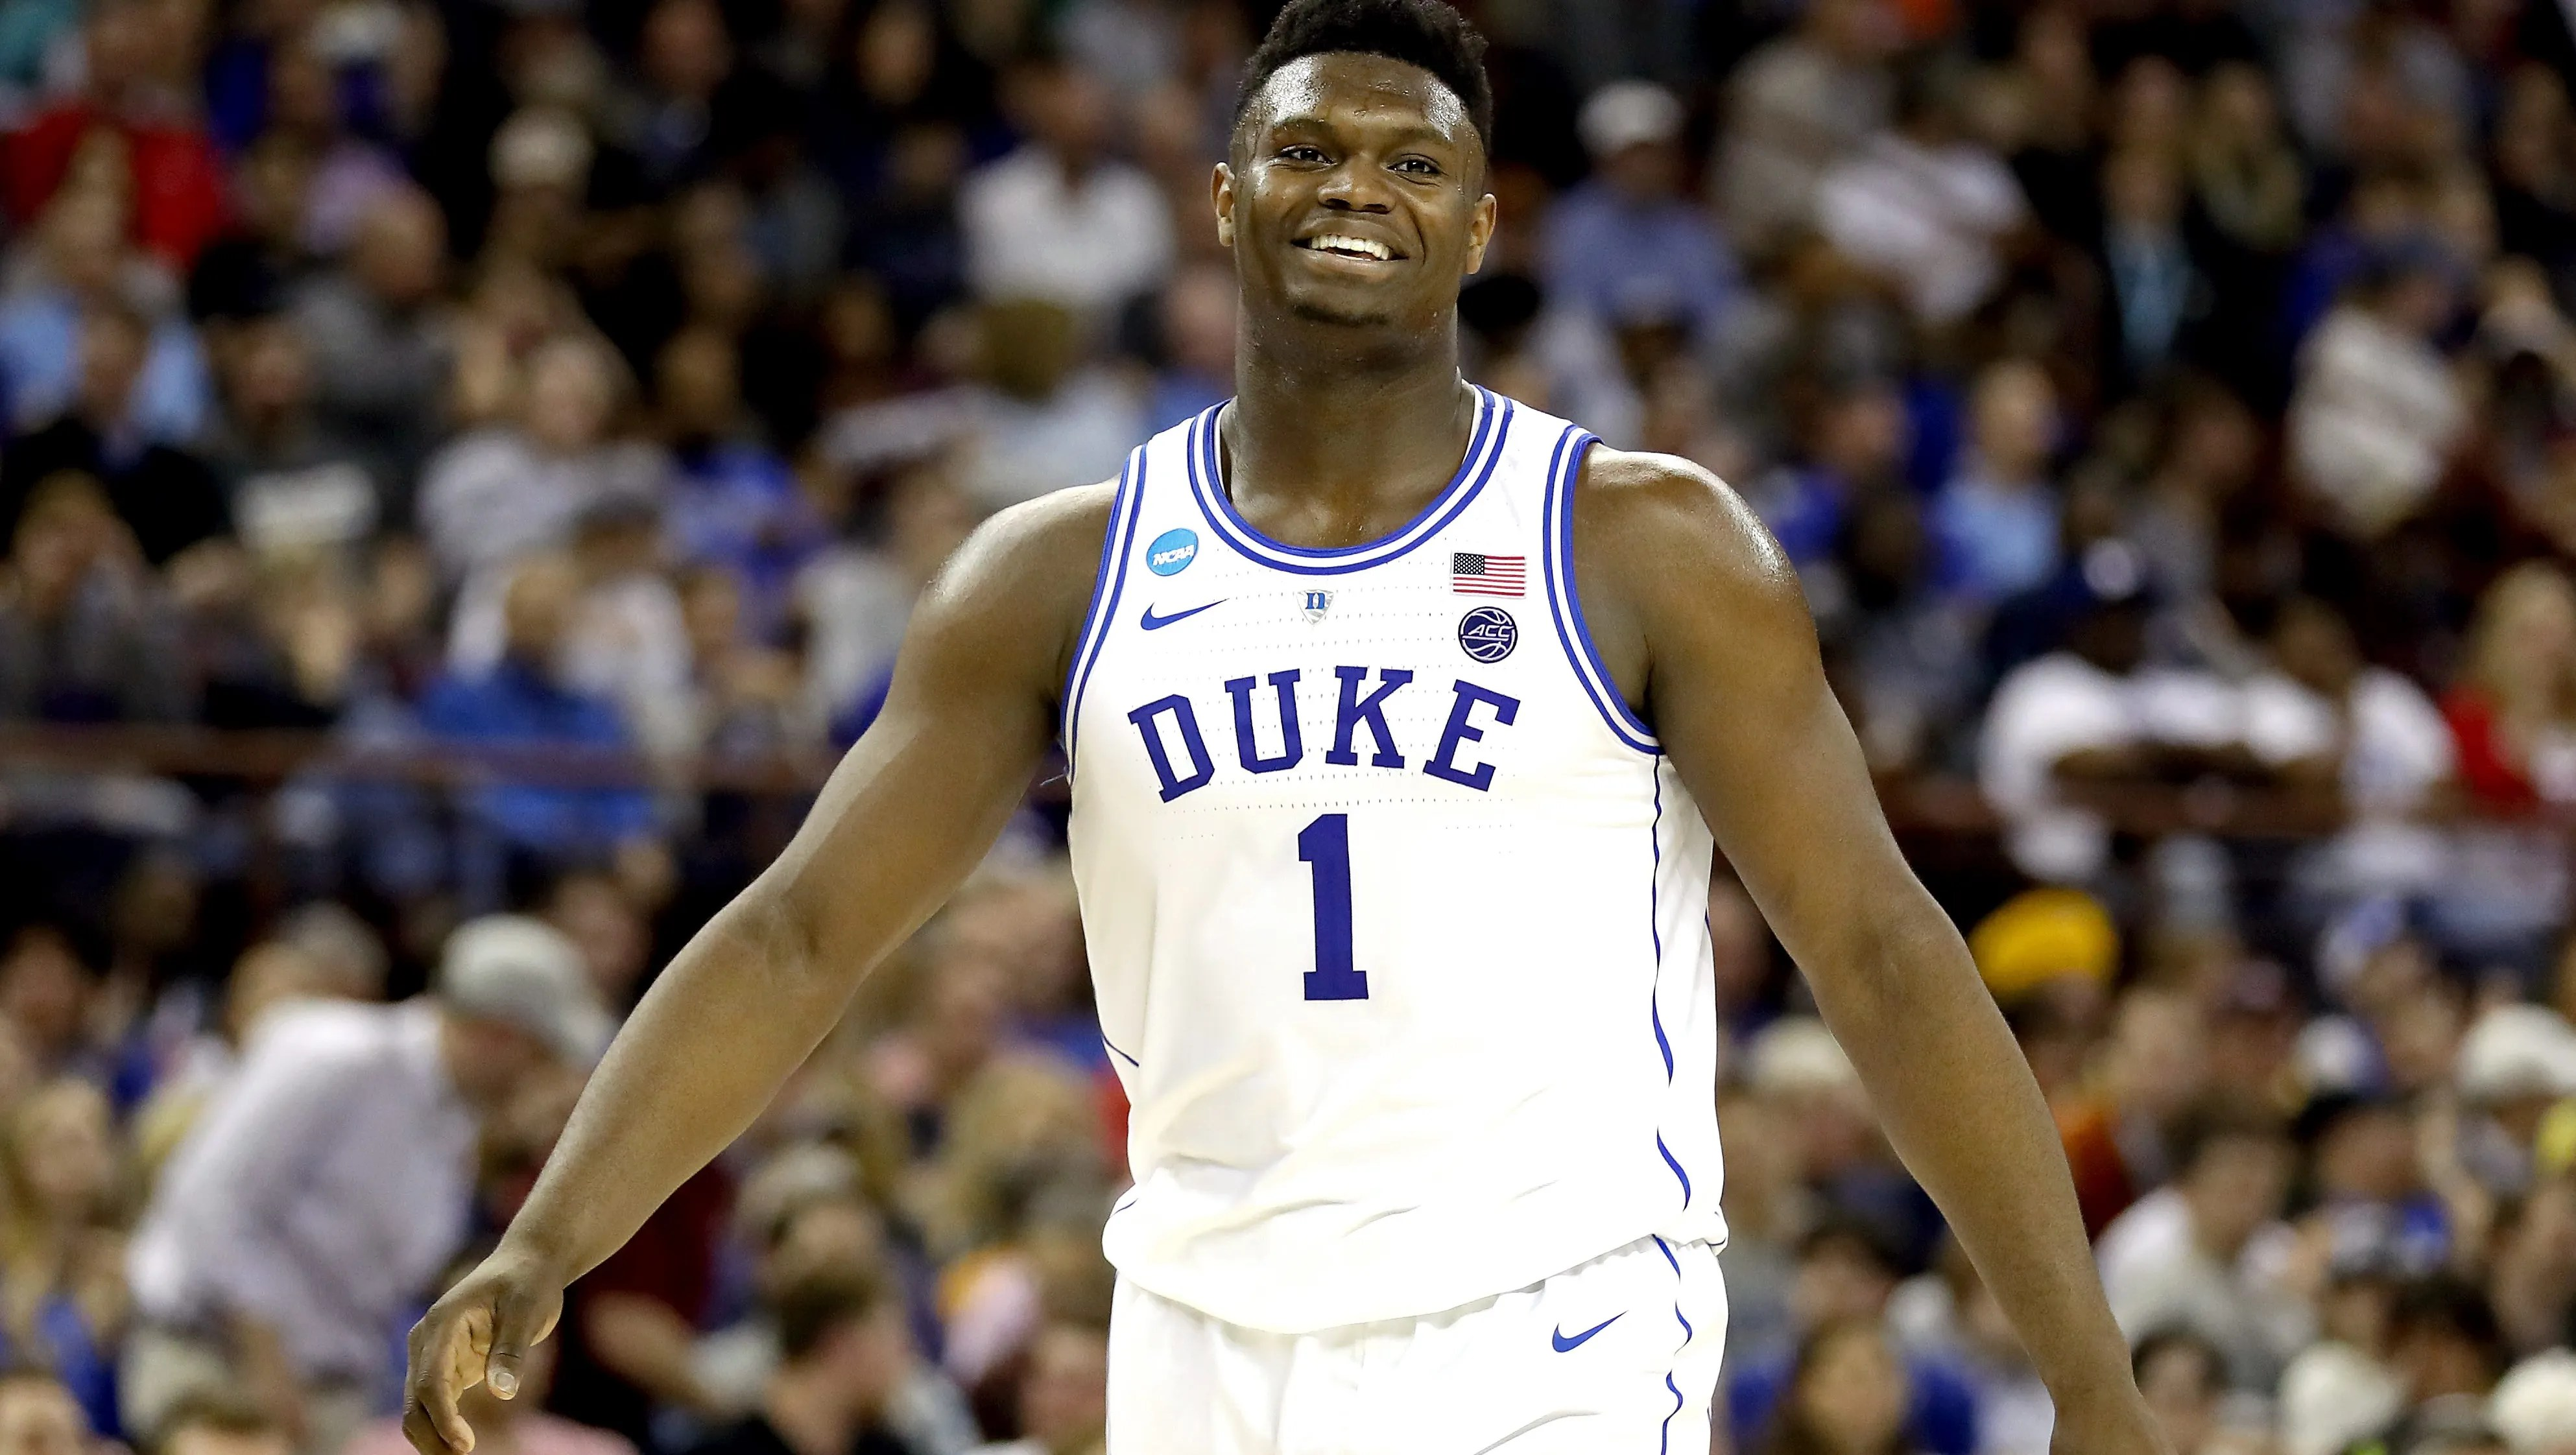 Nba Draft Lottery Zion Williamson To The Memphis Grizzlies